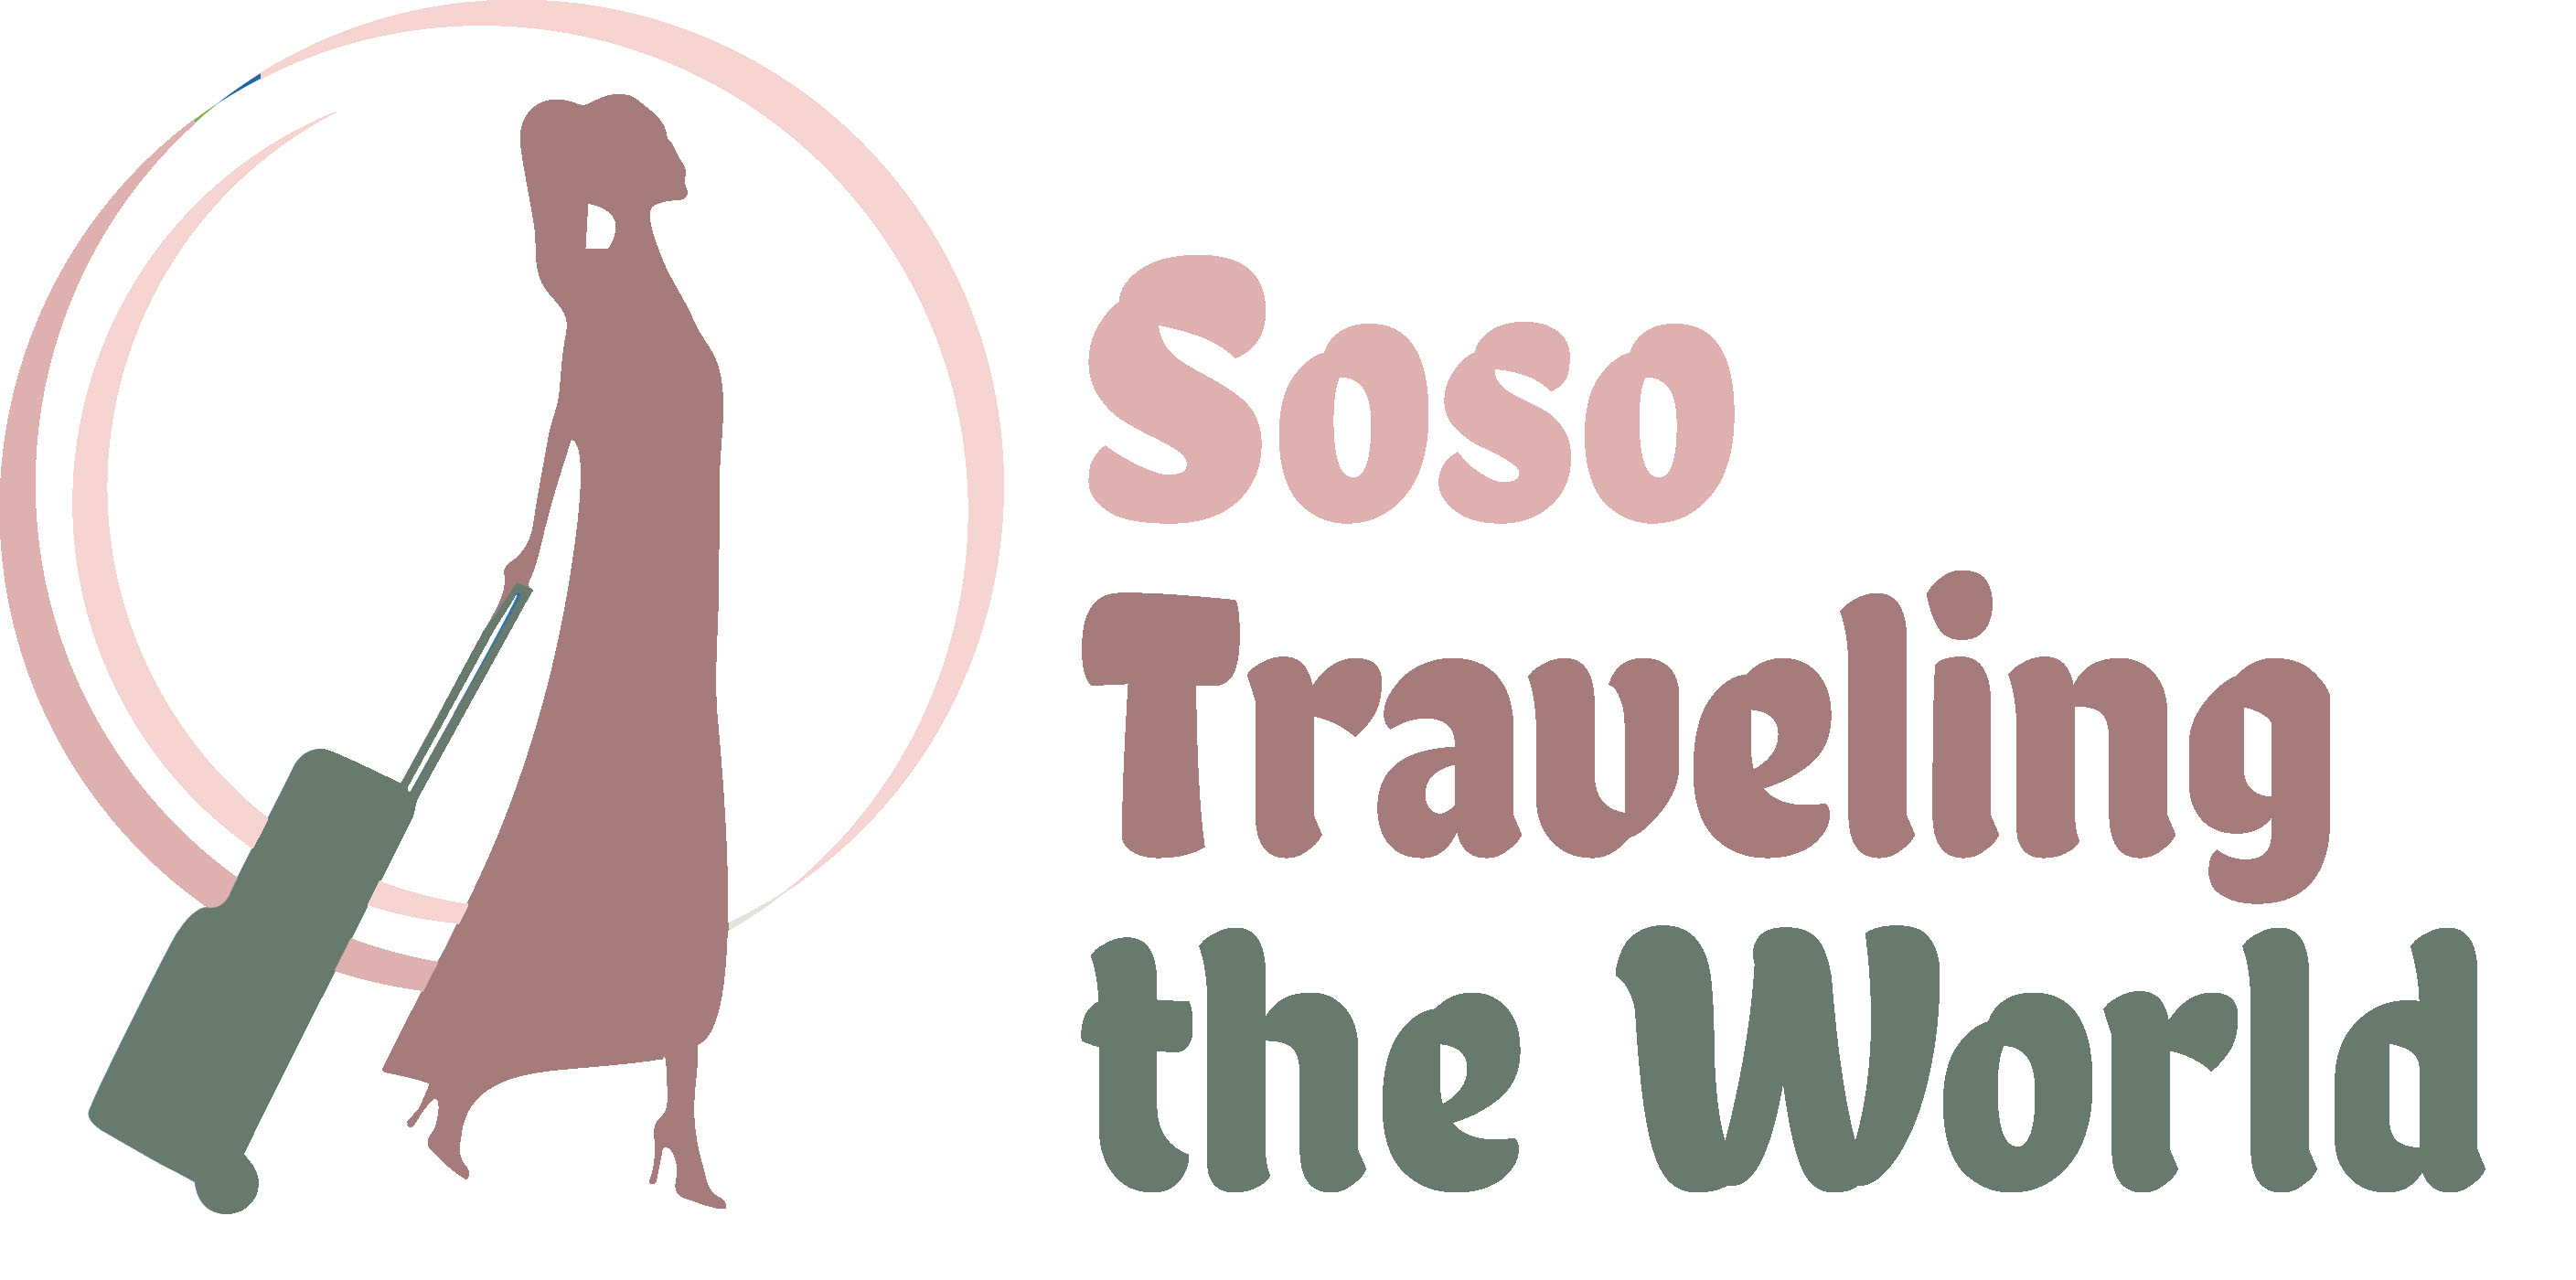 soso traveling the world